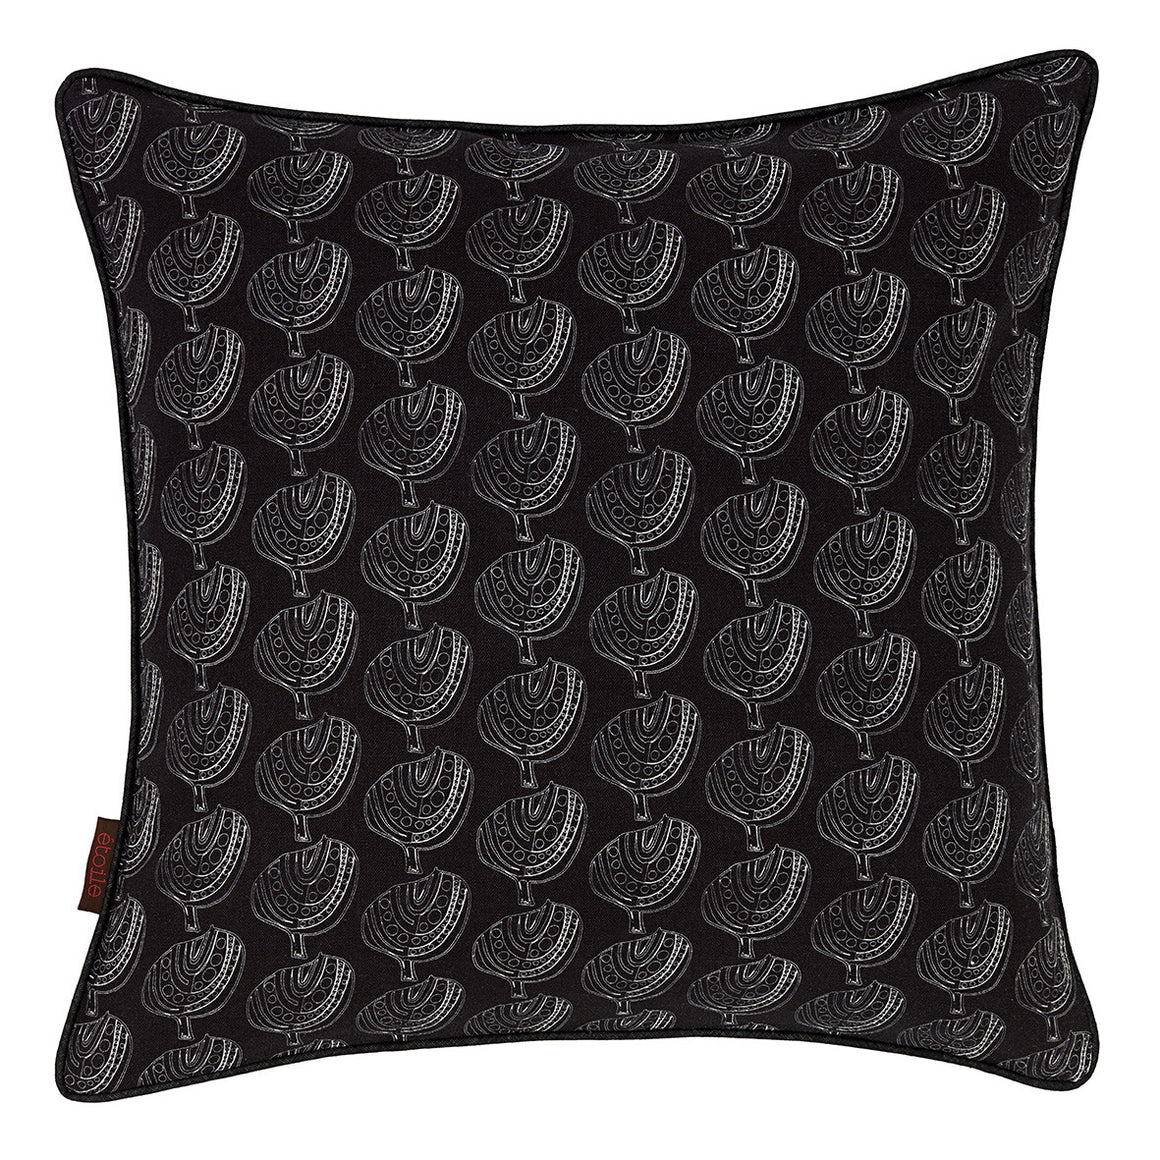 "Graphic Apple Tree Pattern Printed Linen Union Decorative Throw Pillow in Black 45x45cm (18x18"")"